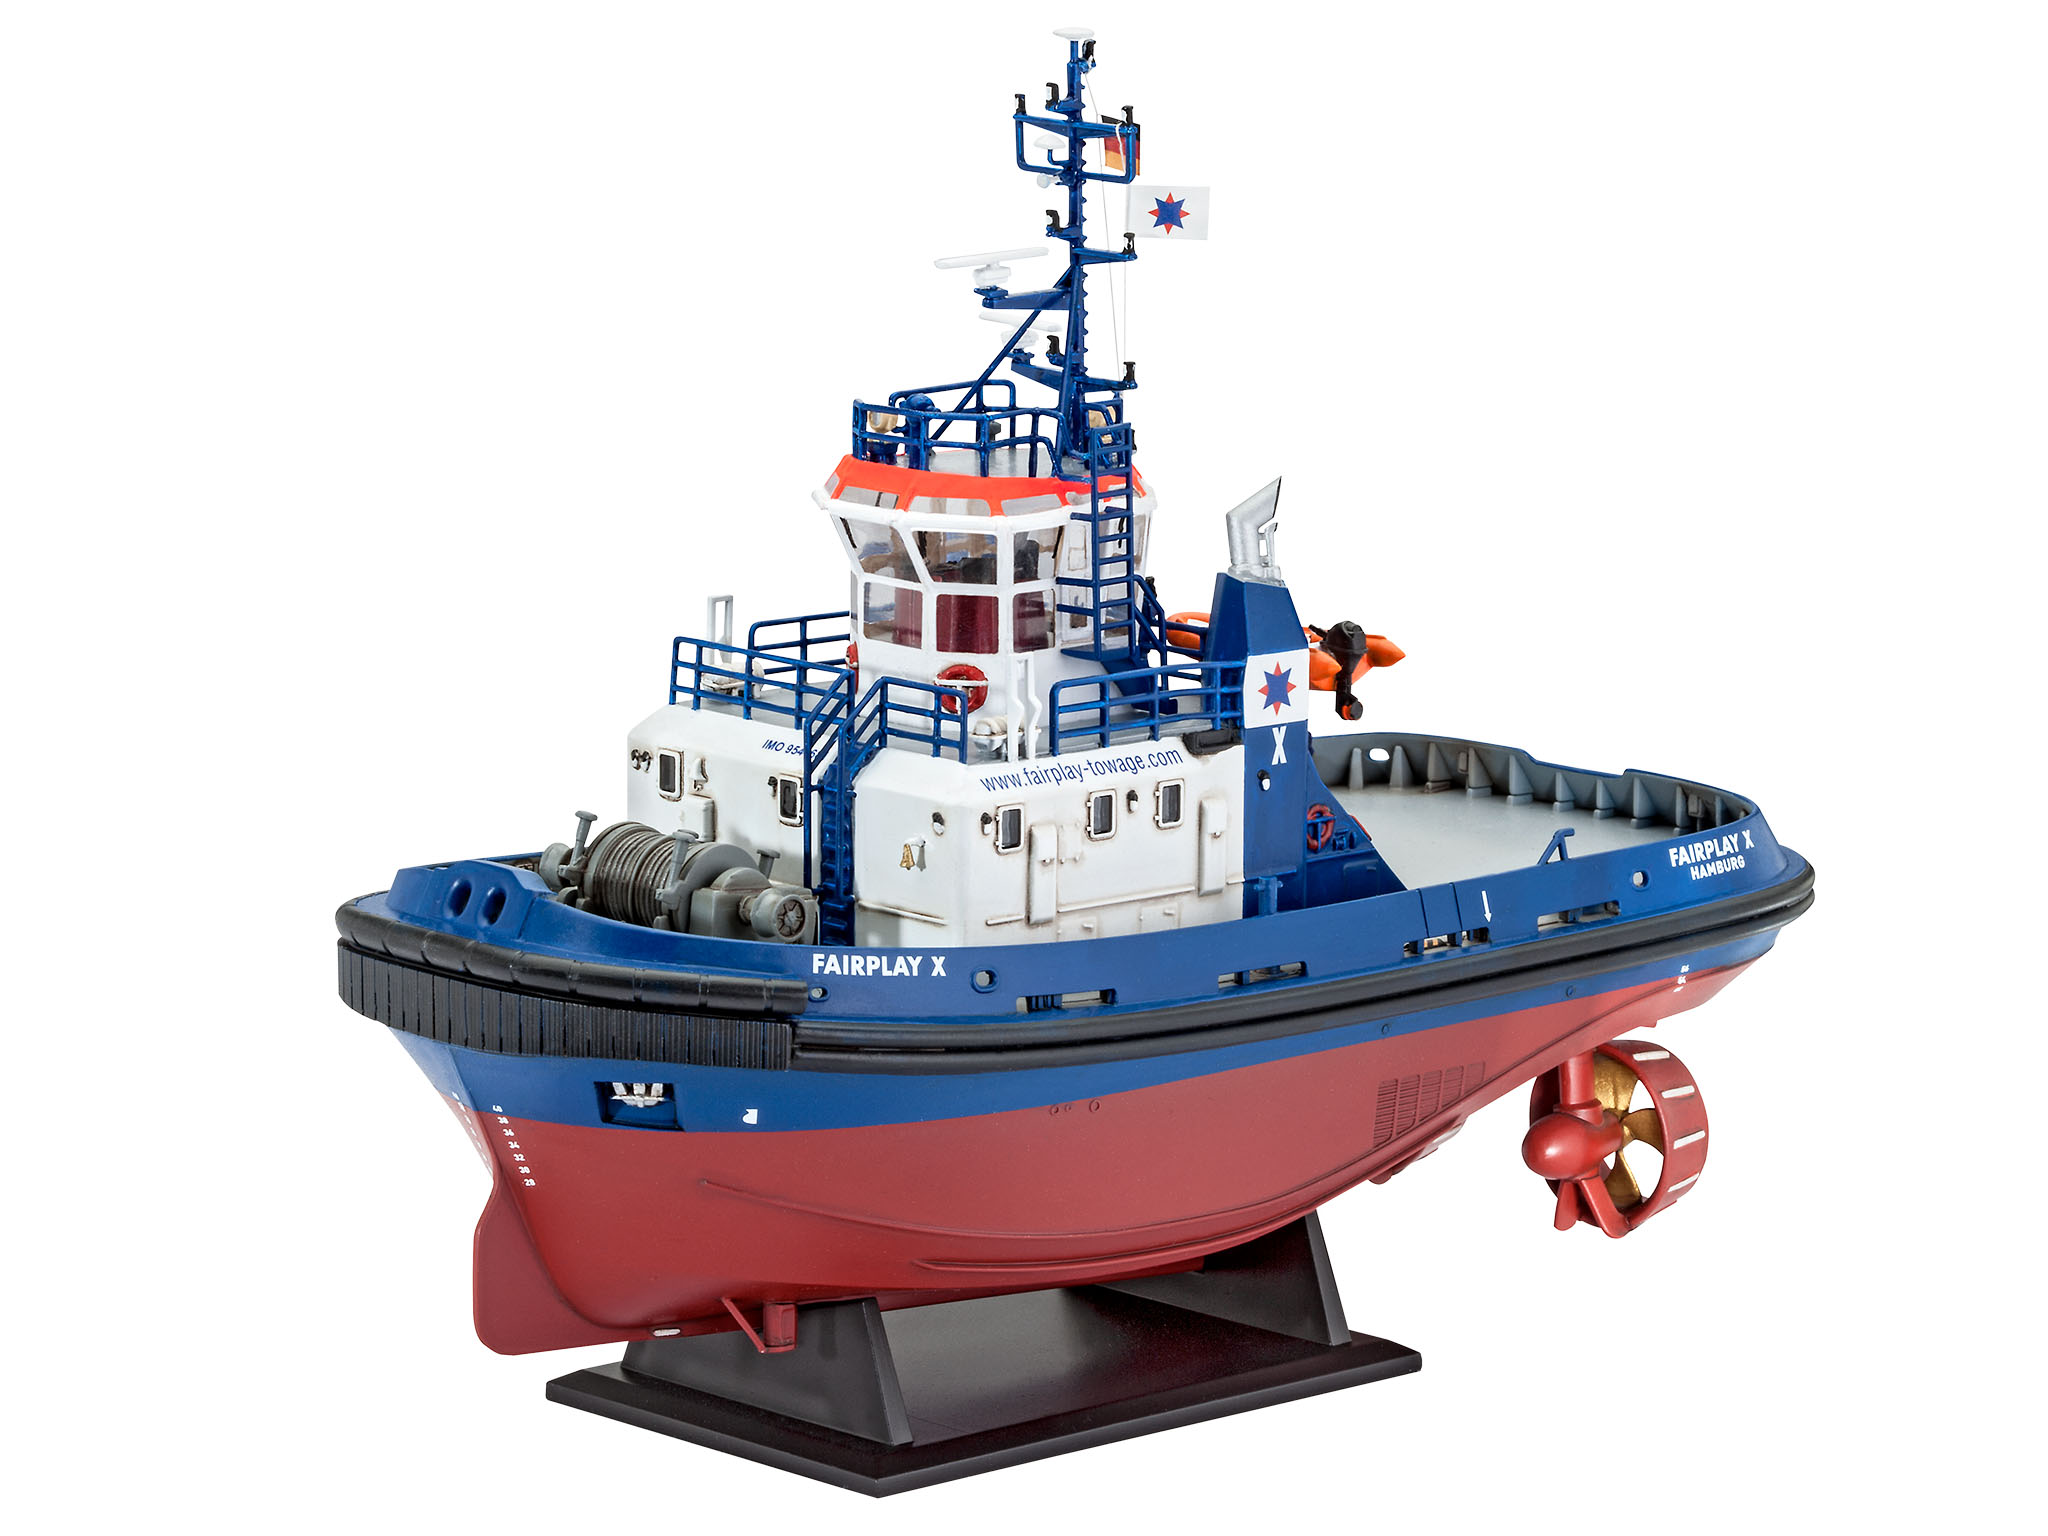 toy boat models with Hafenschlepper Fairplay I Iii X on Hafenschlepper Fairplay I III X as well Tuna Clipper 3d Studio Max besides 262910256679 in addition Manowar together with Download.